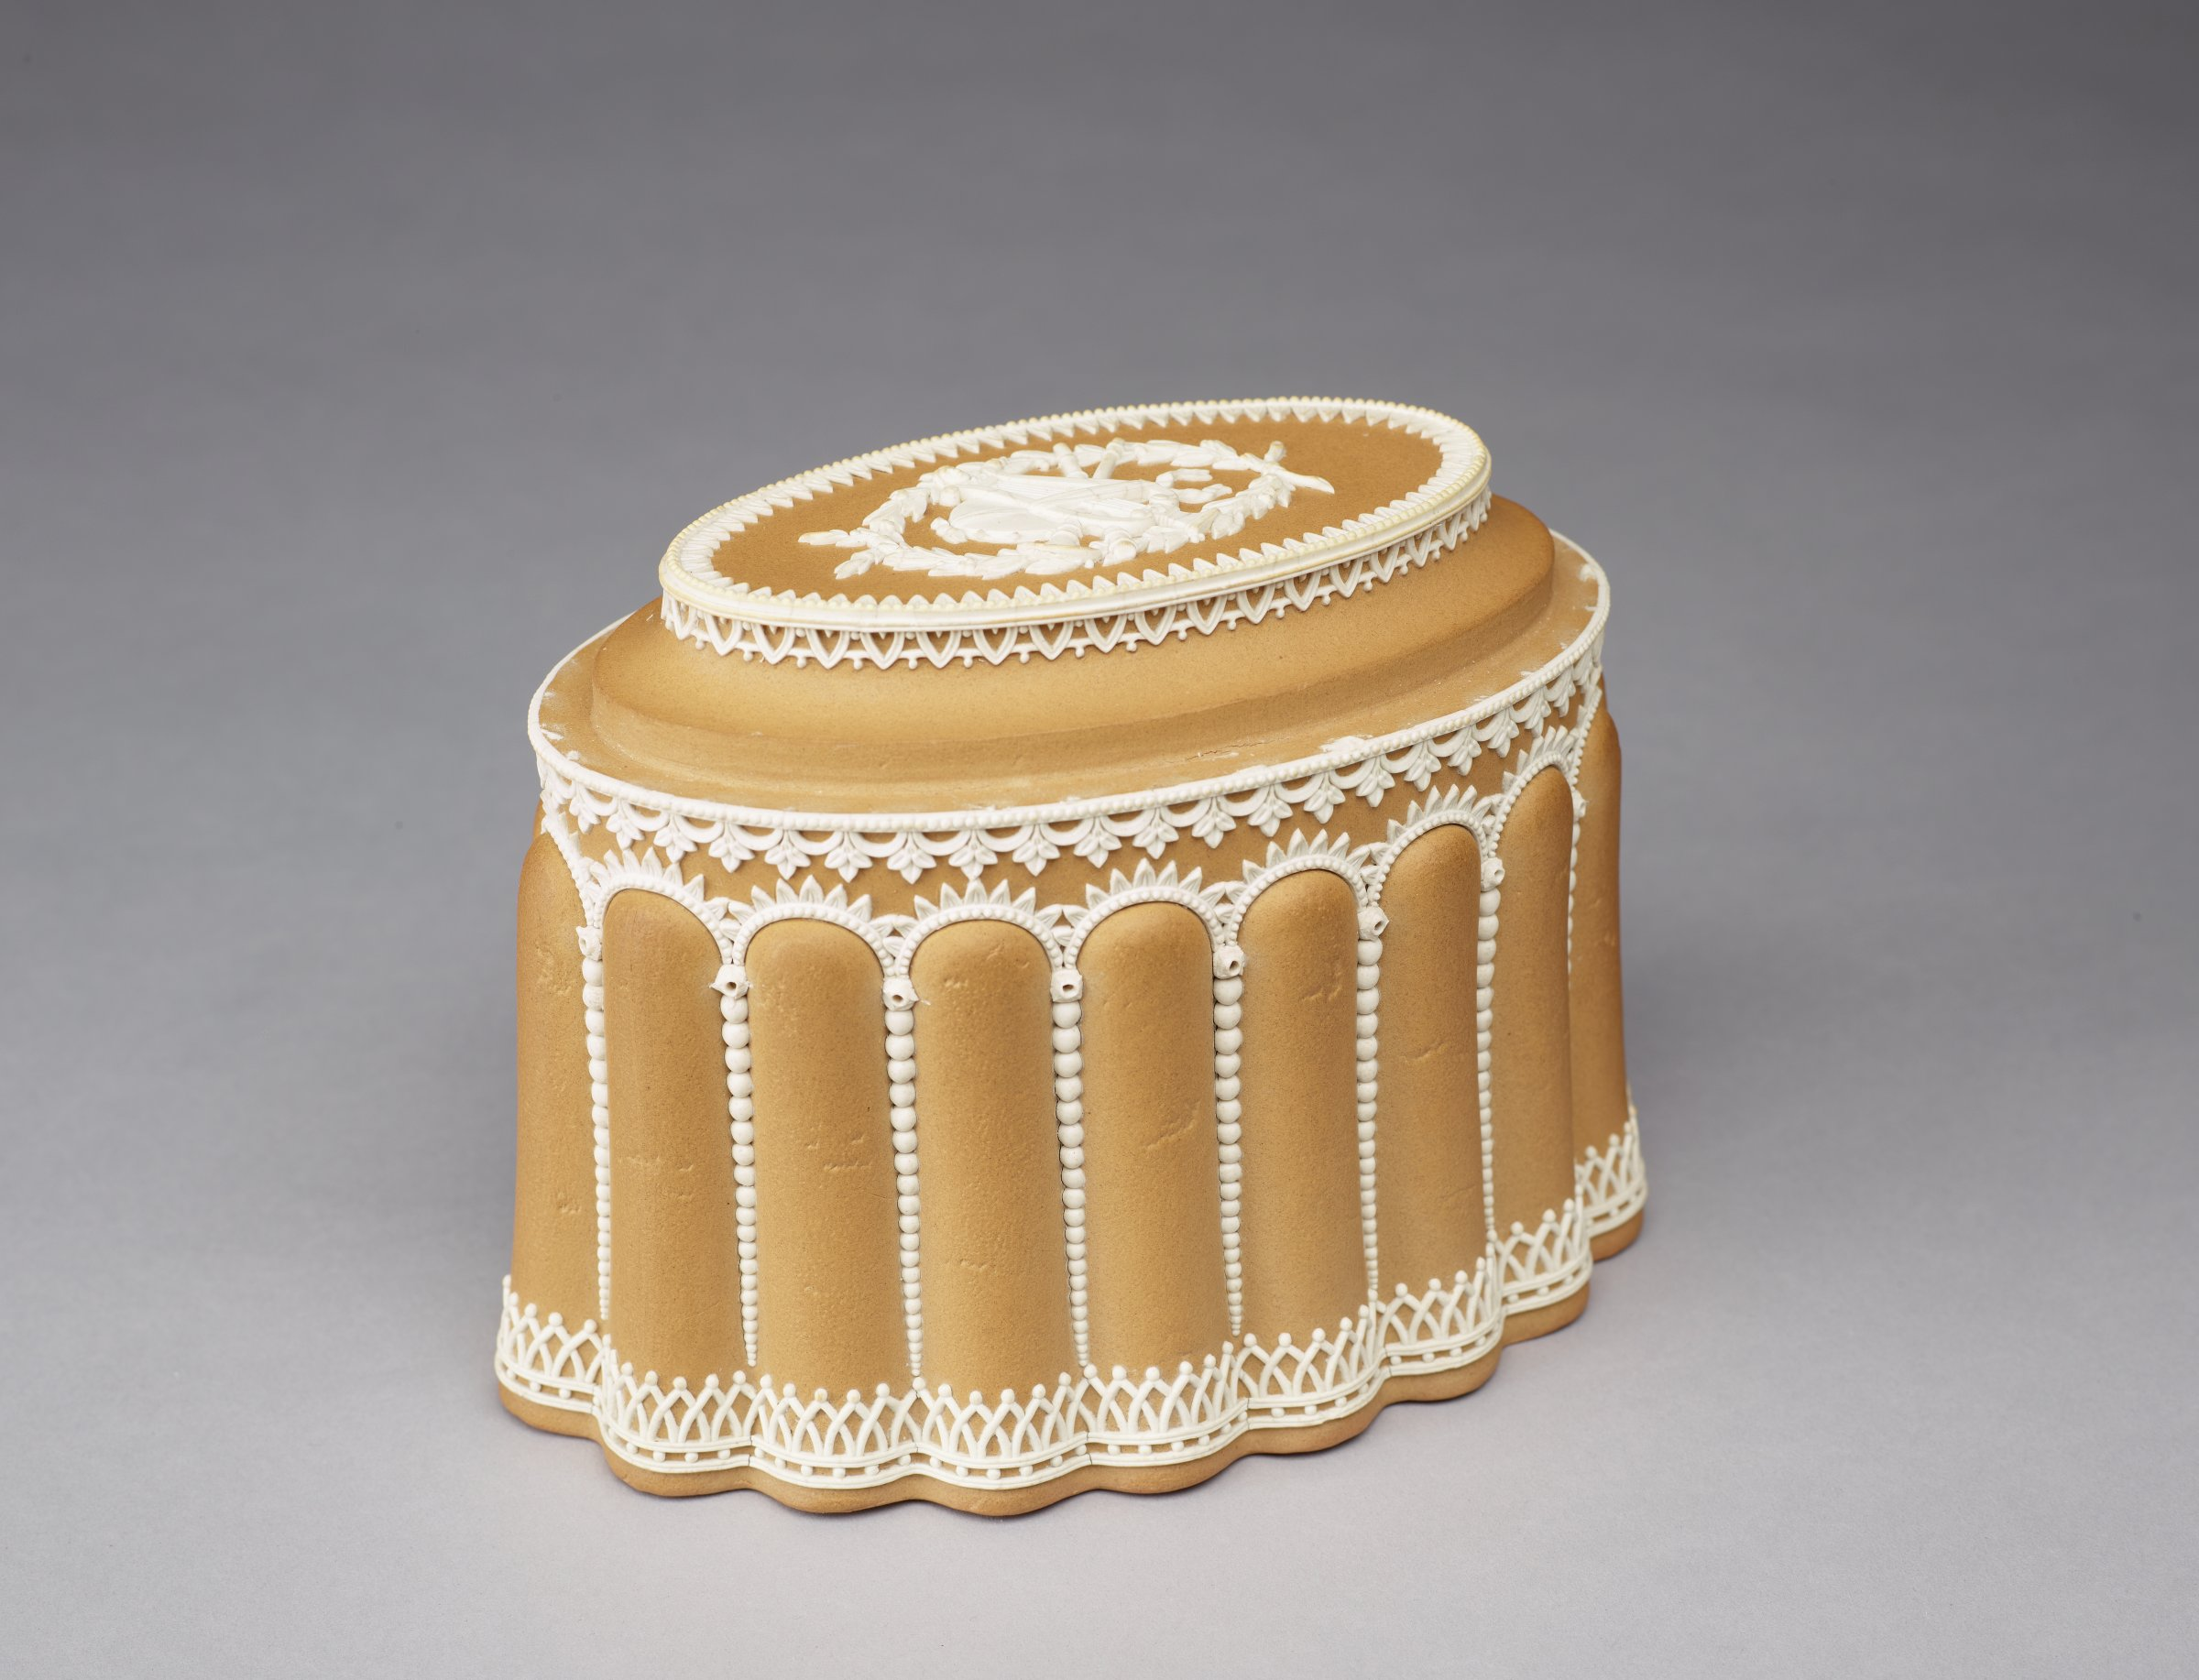 Pair of hollow, oval, caneware conceits in the form of iced cakes with white jasper applied elements to indicate the frosting, the sides in the form of lady fingers arranged vertically around the body and supporting a tiered top, the top layer decorated with a band of stiff leaf motifs and in the center an applied element comprised of musical instruments within a border of crossed laurel branches.